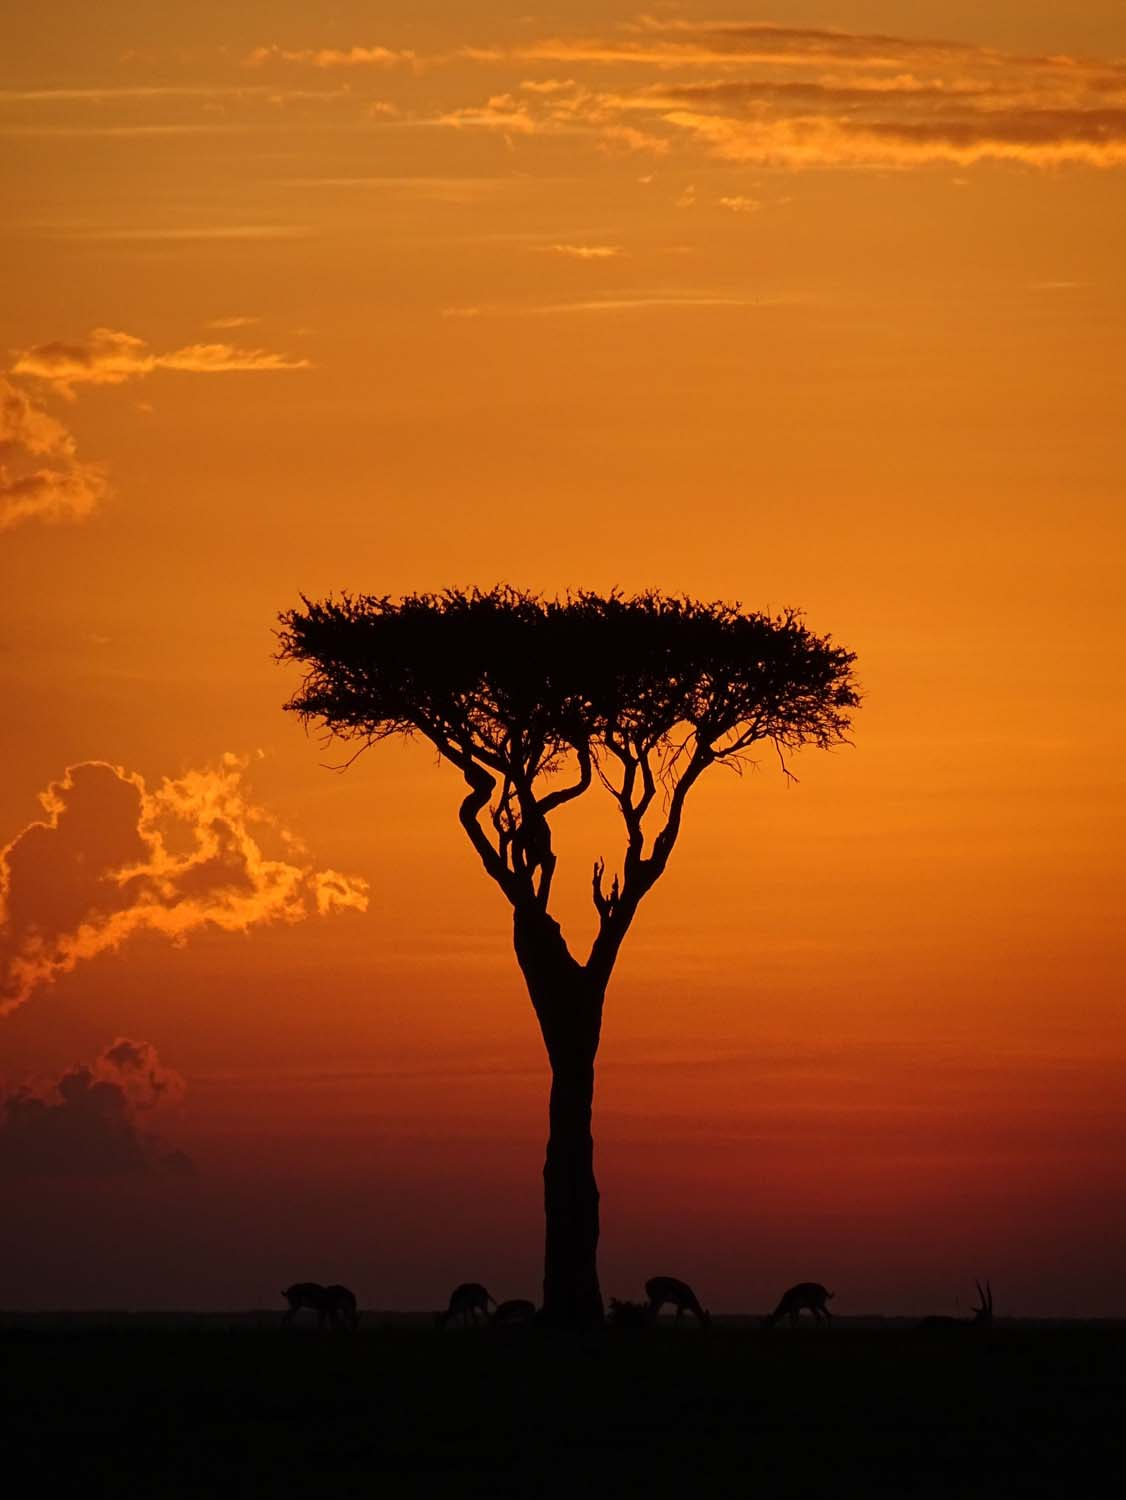 another gorgeous sunset in Africa